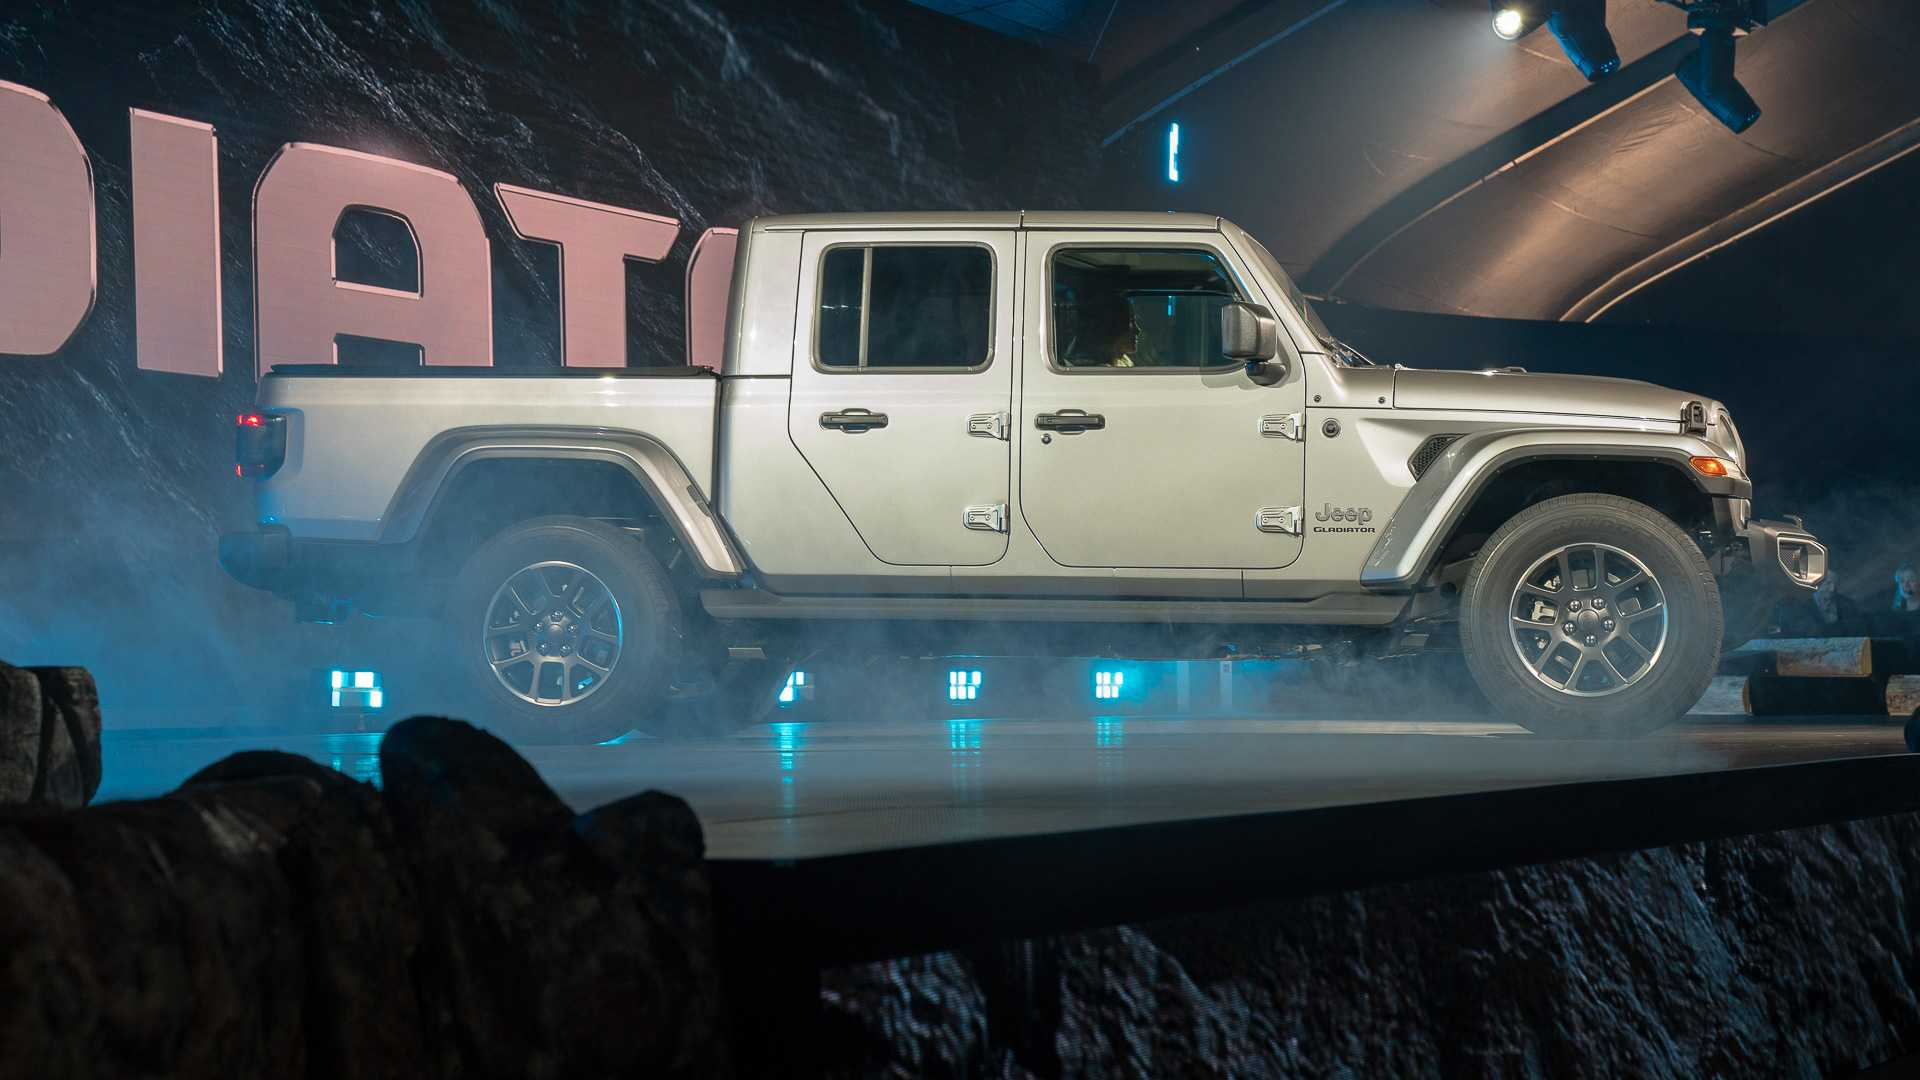 67 All New 2020 Jeep Gladiator Engine Price And Release Date